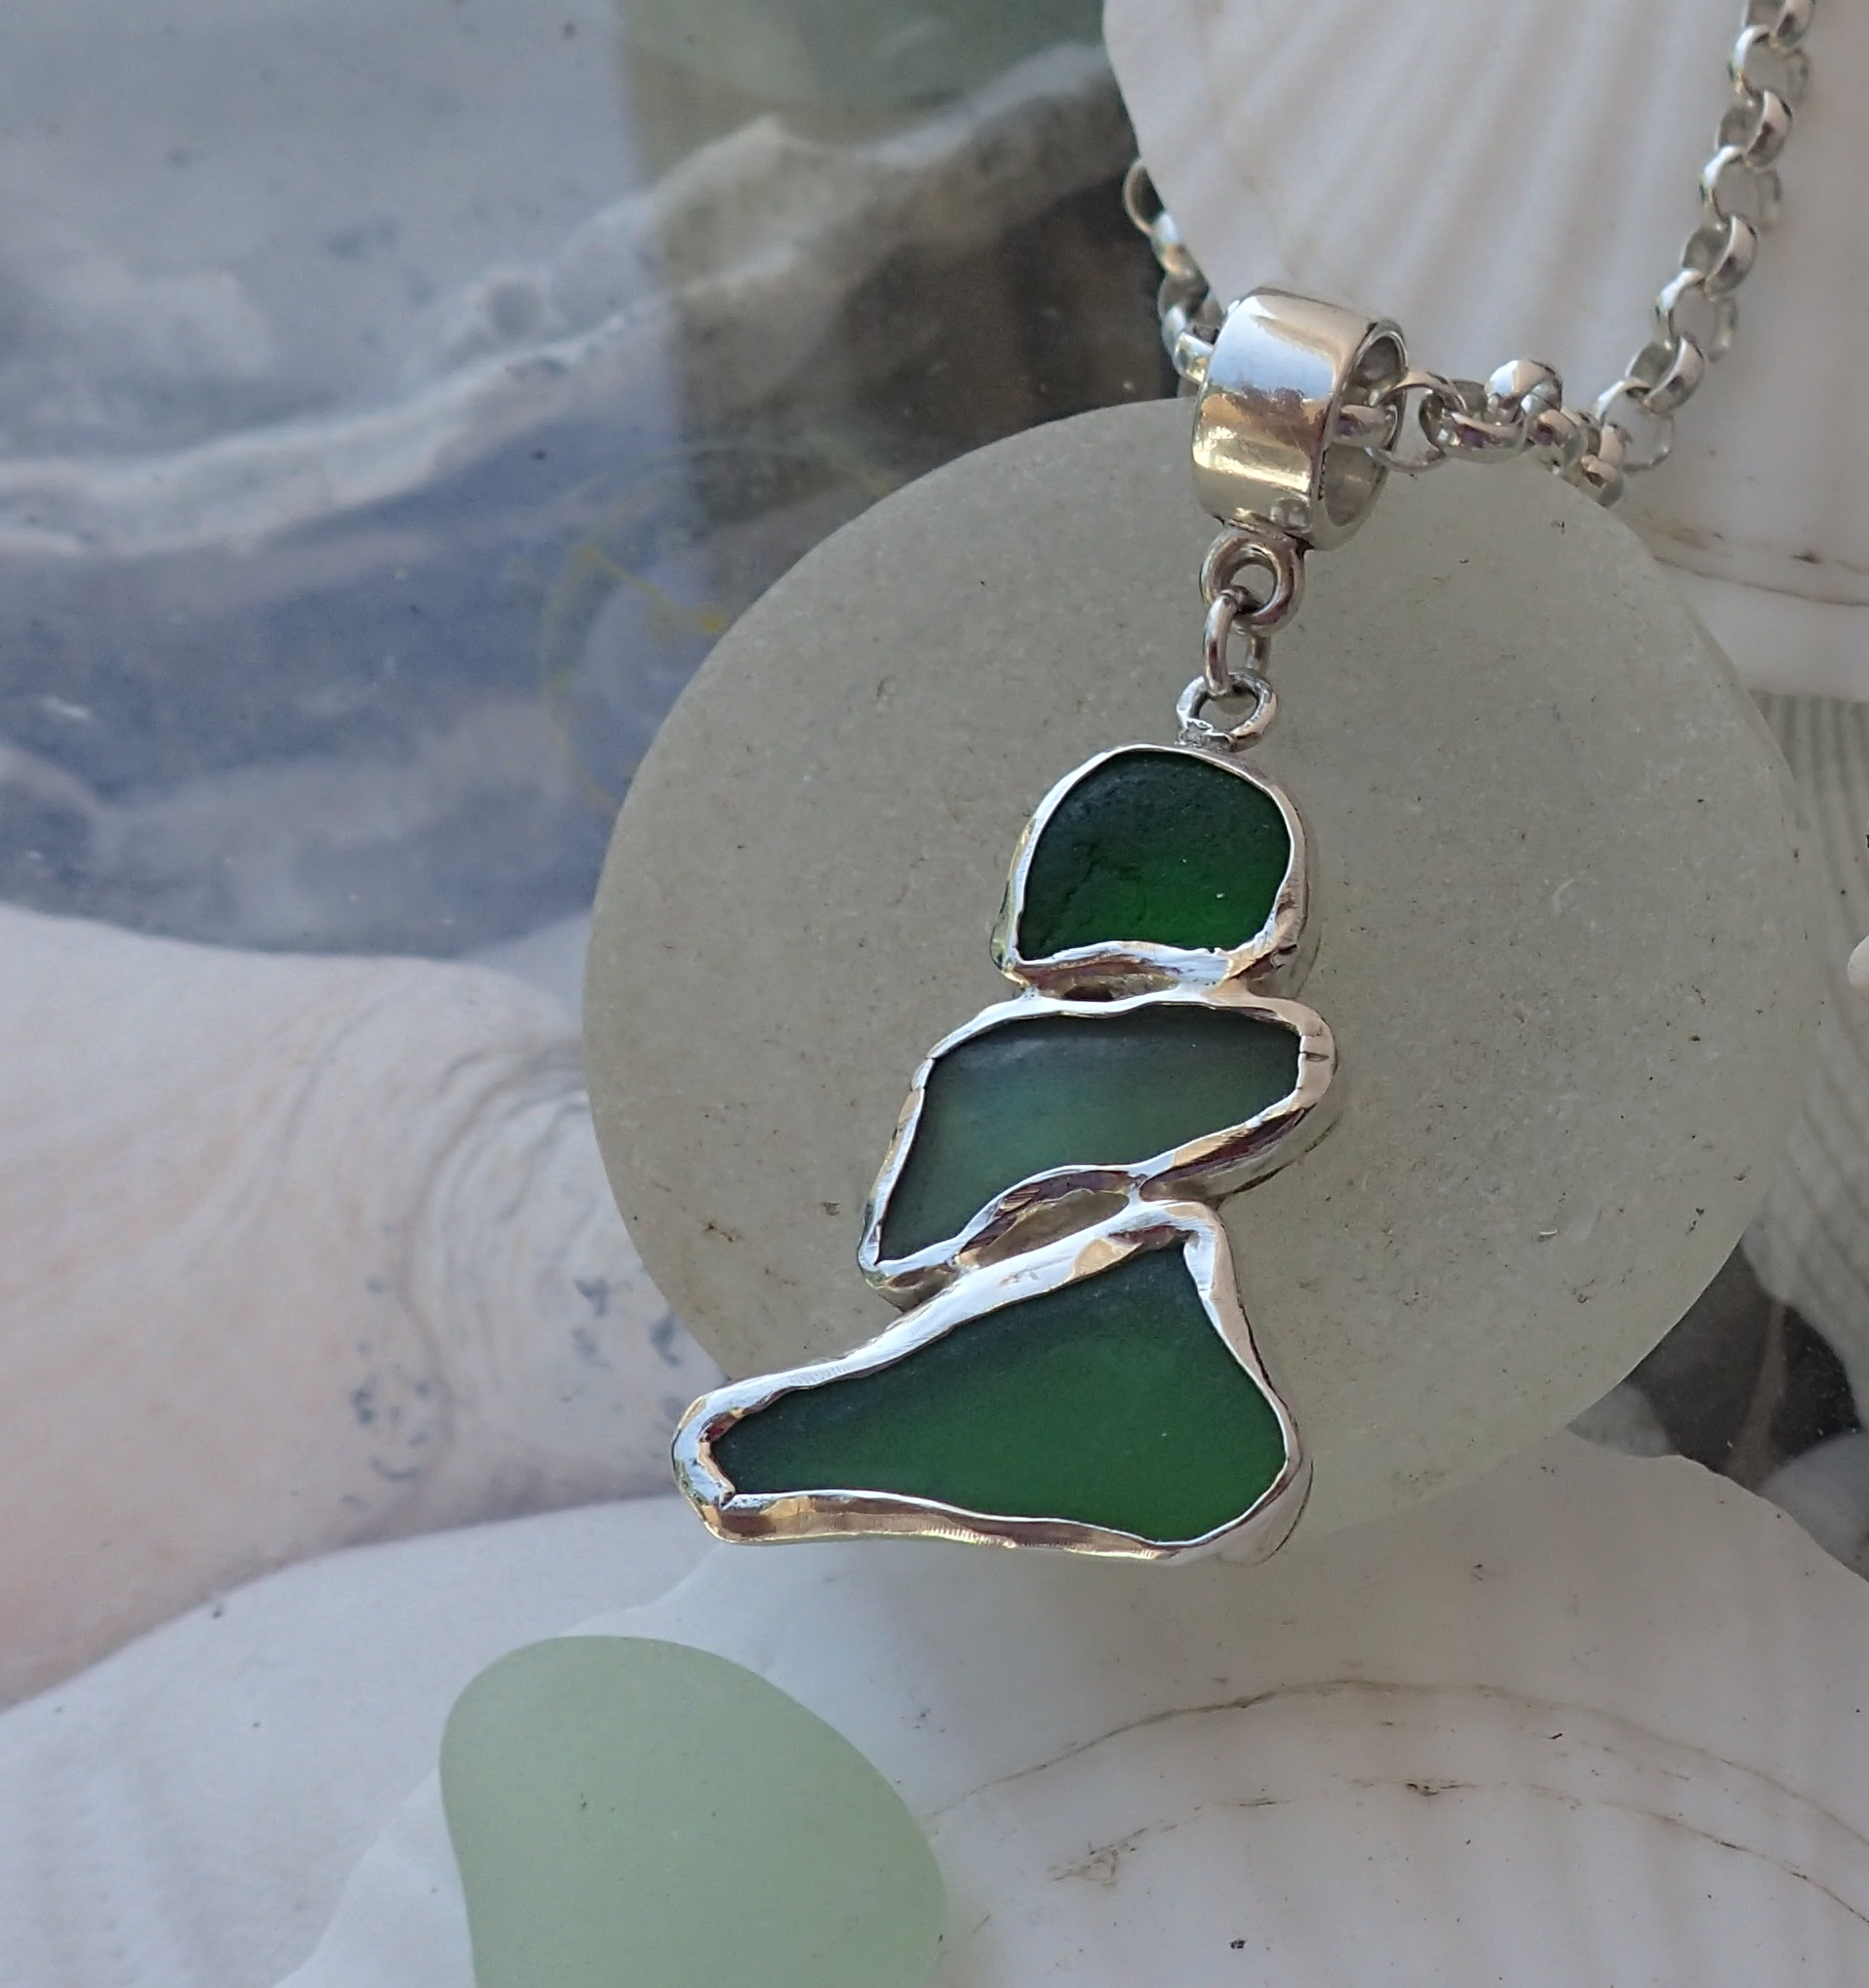 Three pieces of green authentic seaglass snuggle into a showstopping pendant